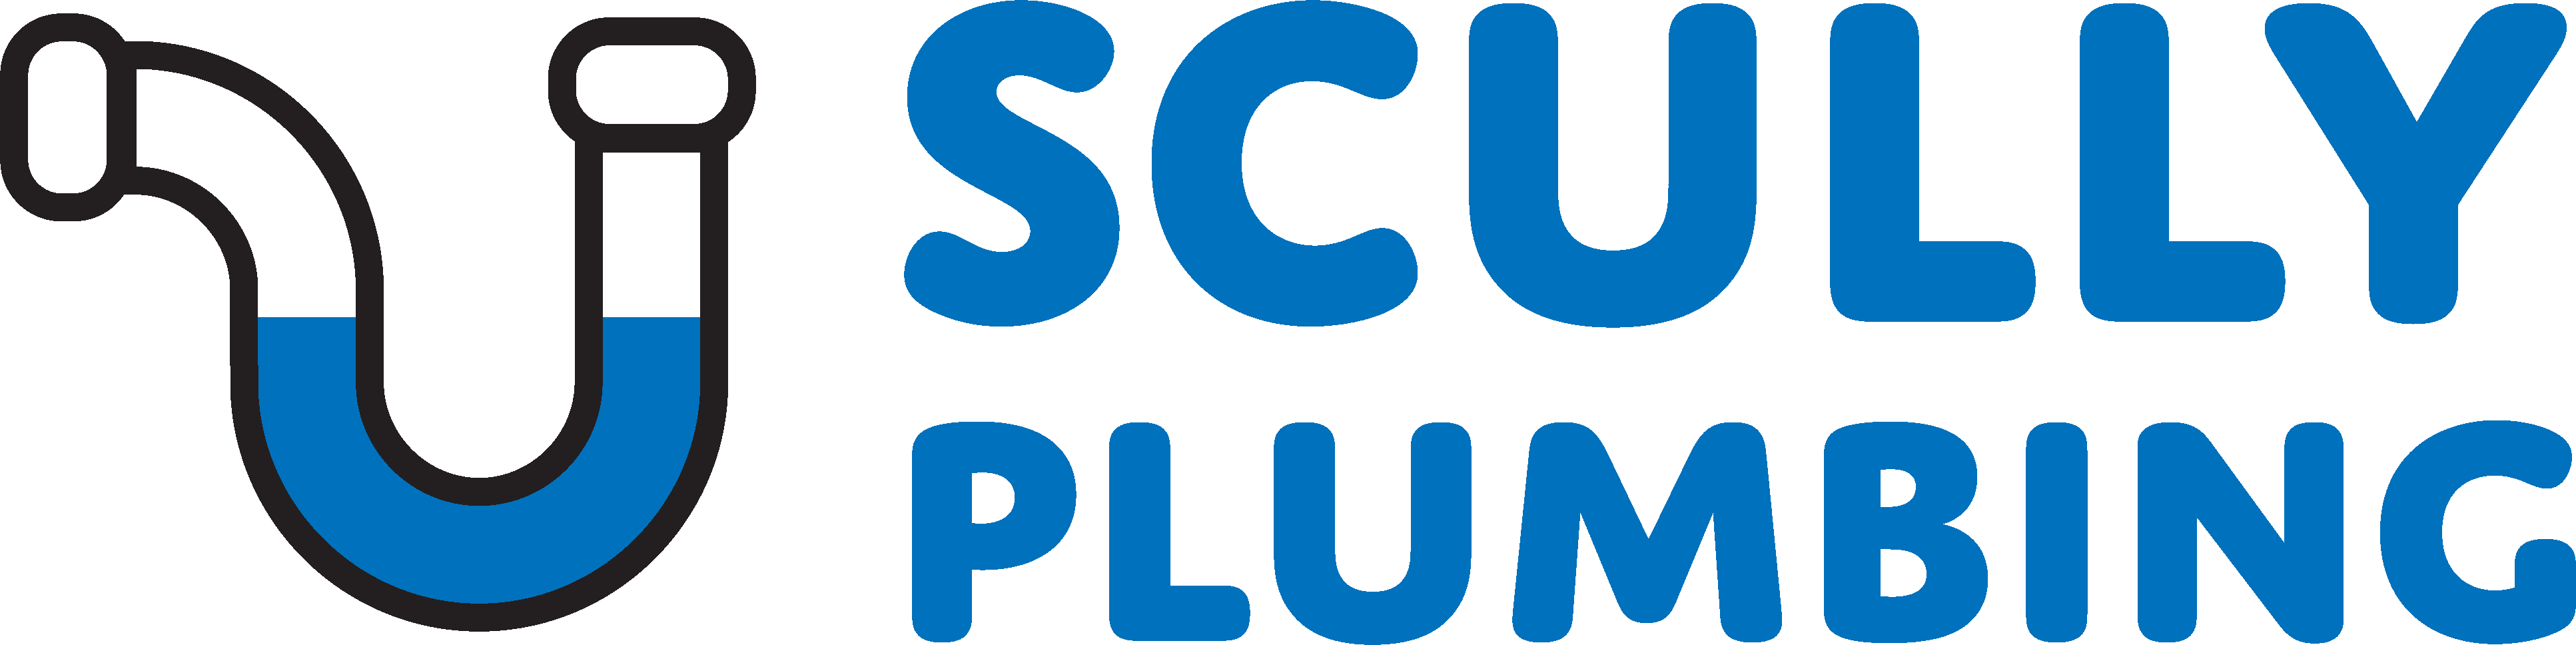 scully plumbing logo